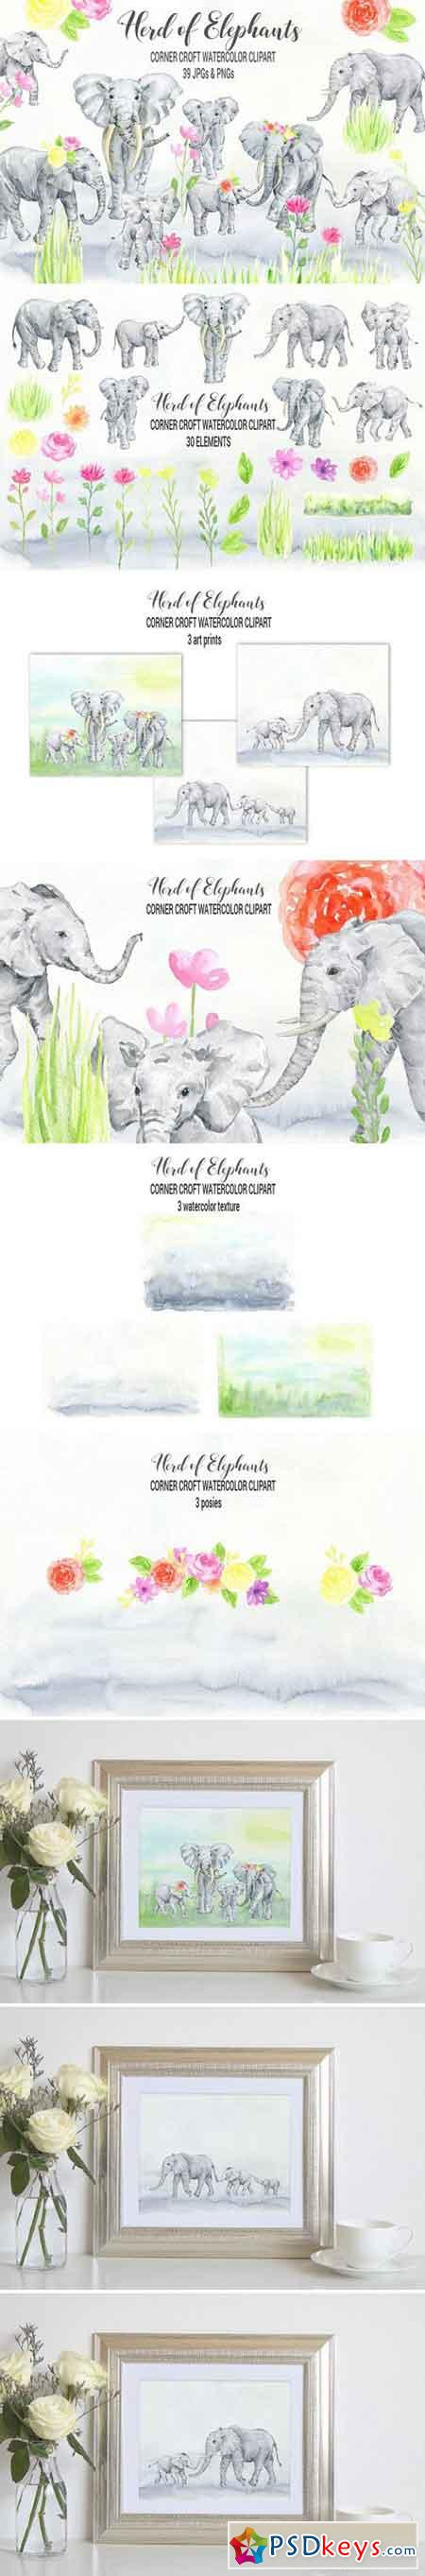 Watercolor Elephant Clipart 2380009